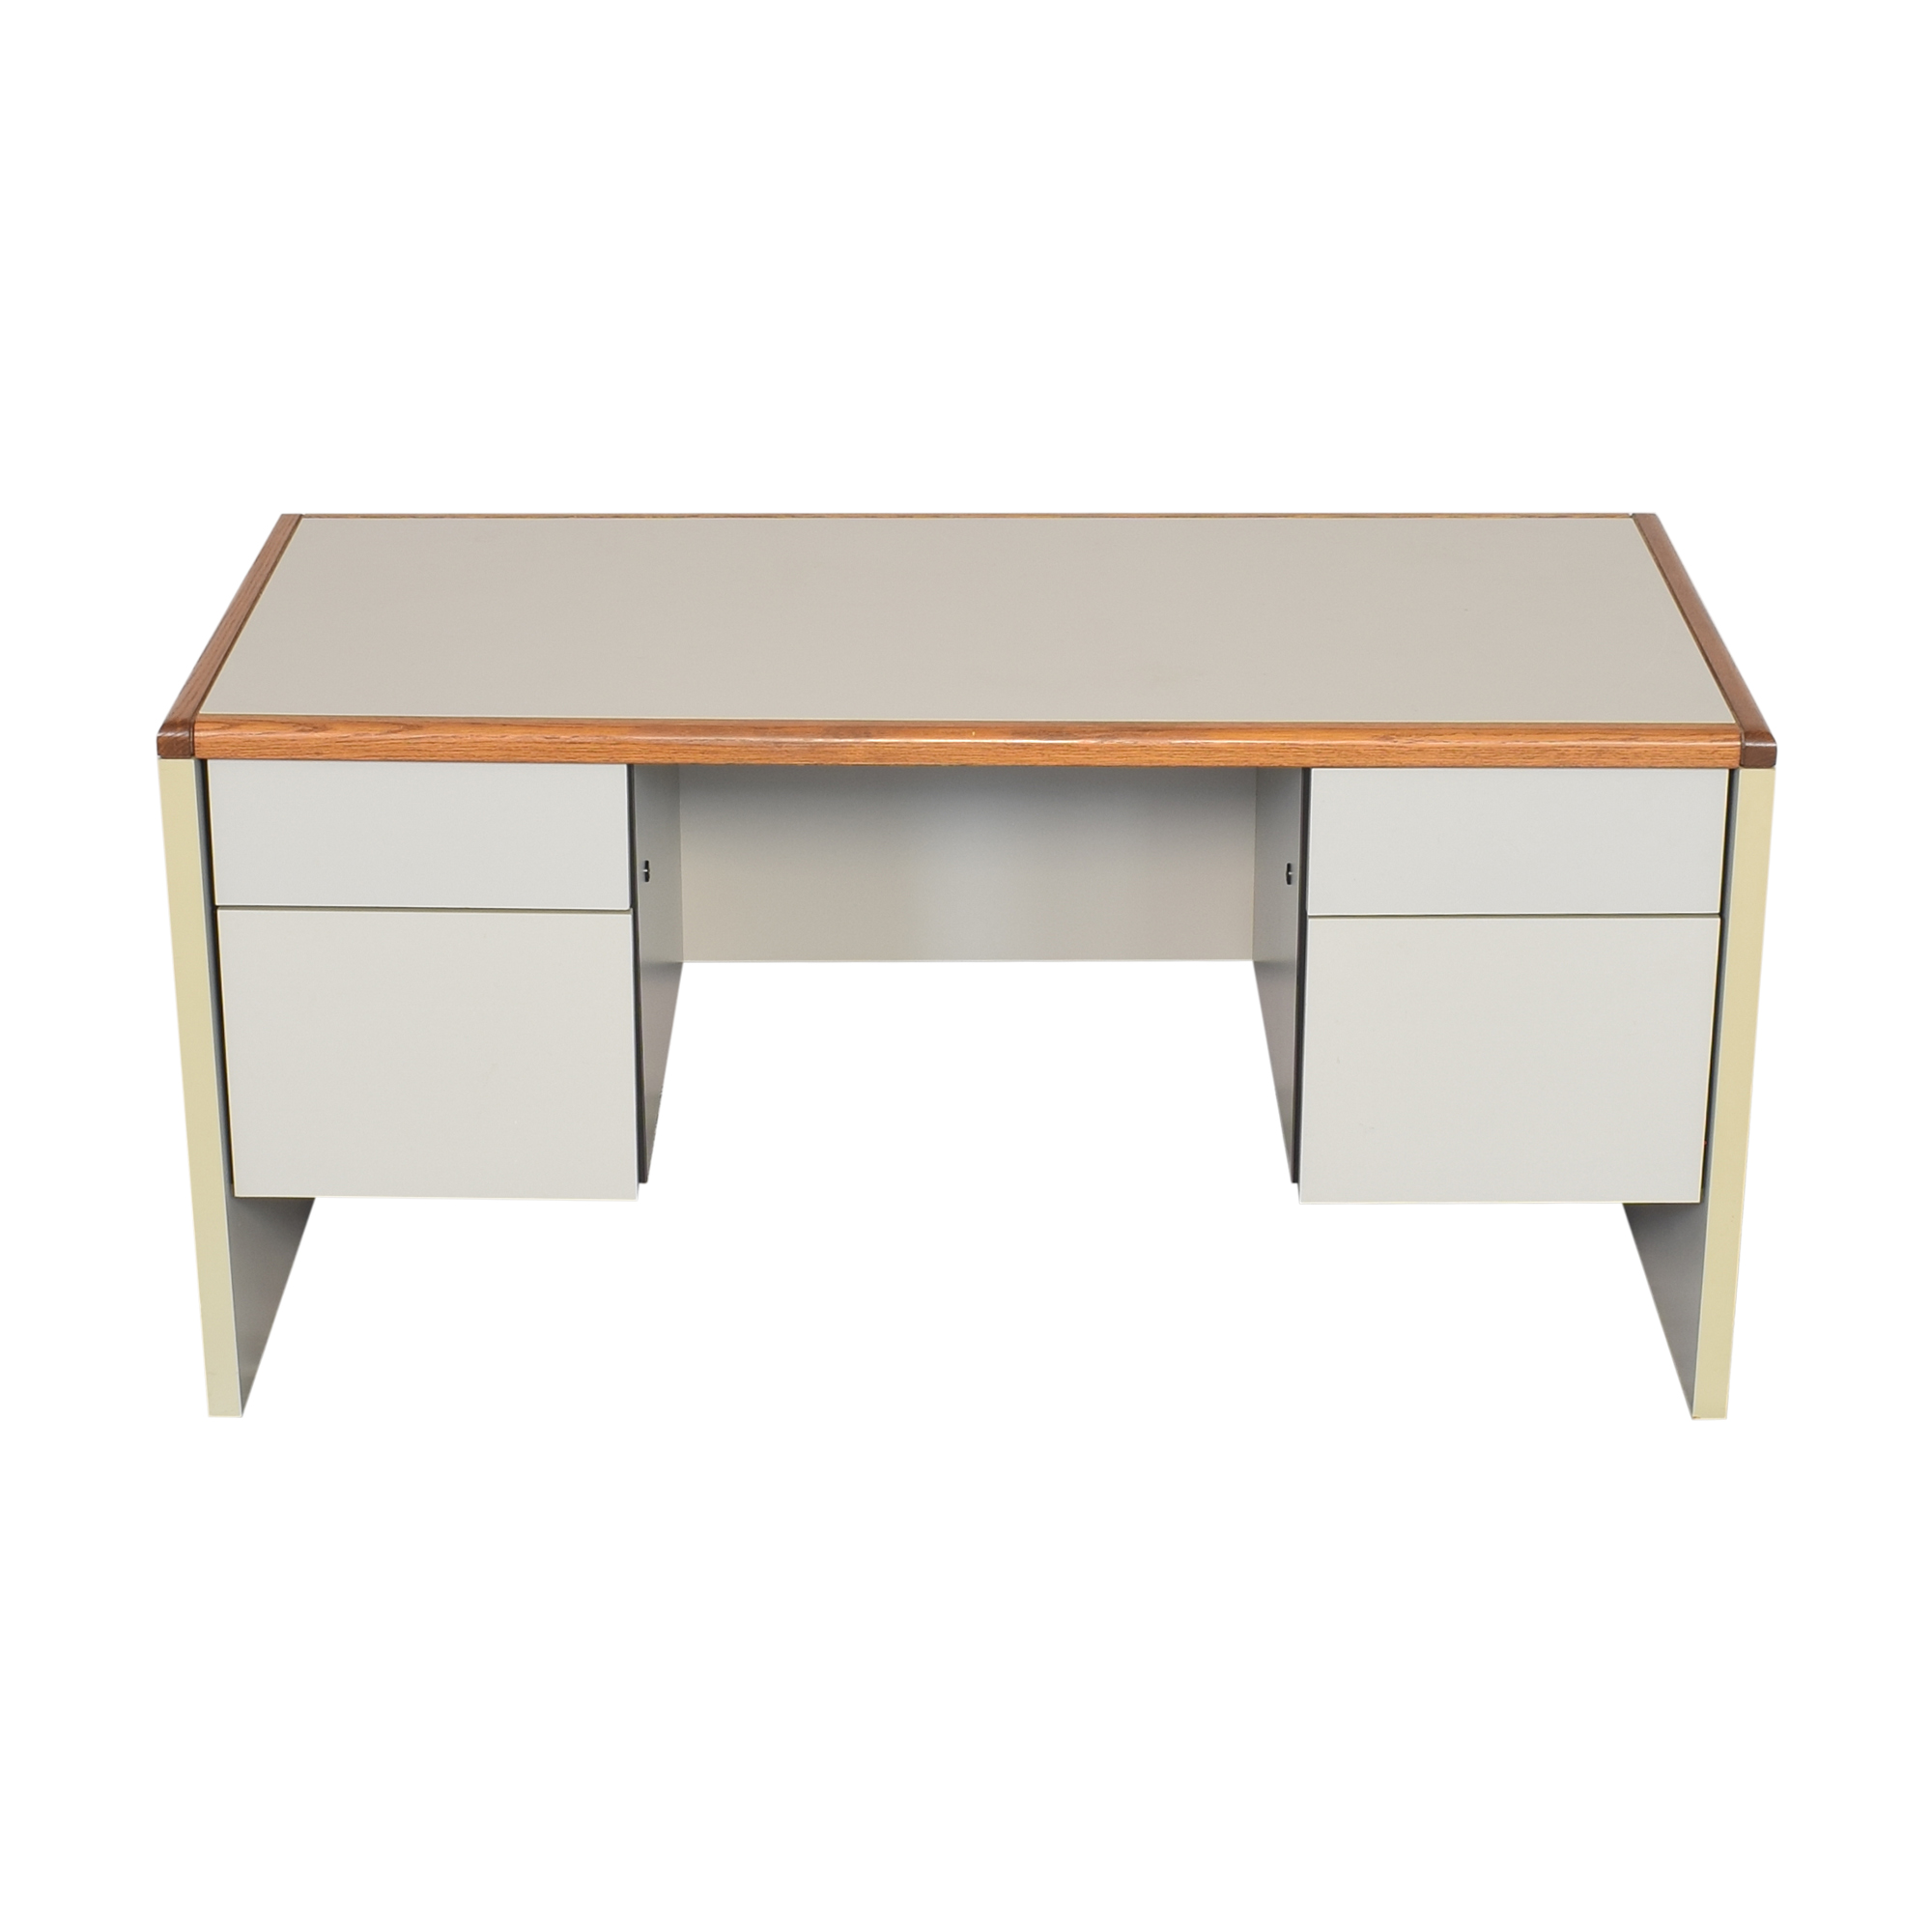 Desk with Four Drawers dimensions